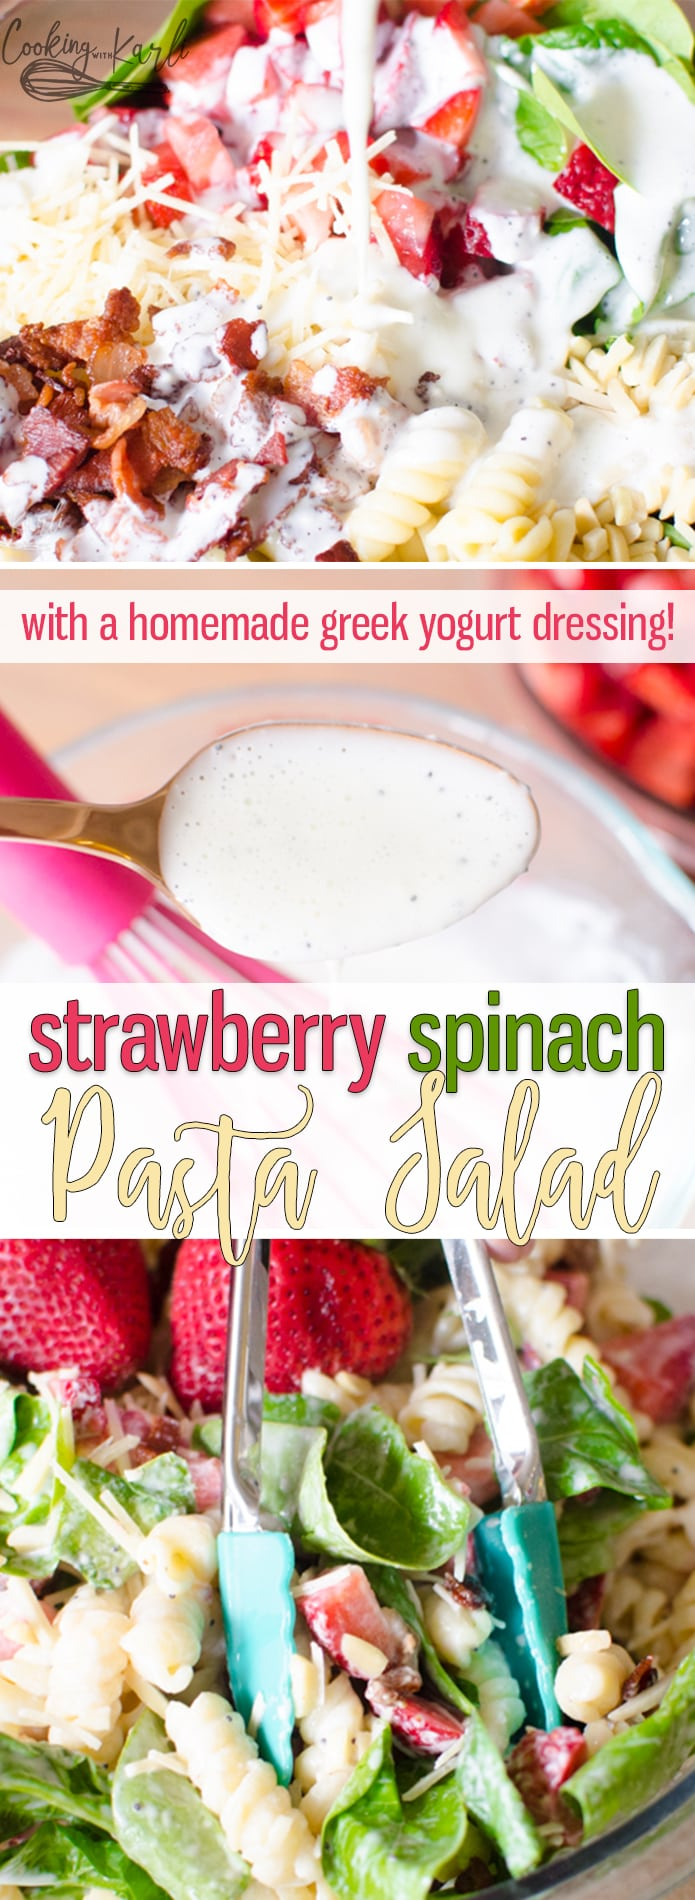 Strawberry Spinach Pasta Salad is a sweet and tangy pasta salad that is loaded with fresh strawberries, spinach, BACON, almonds and parmesan cheese. All of the ingredients are brought together with a homemade greek yogurt poppyseed dressing. |Cooking with Karli| #salad #spinach #pasta #fresh #greekyogurt #recipe #potluck